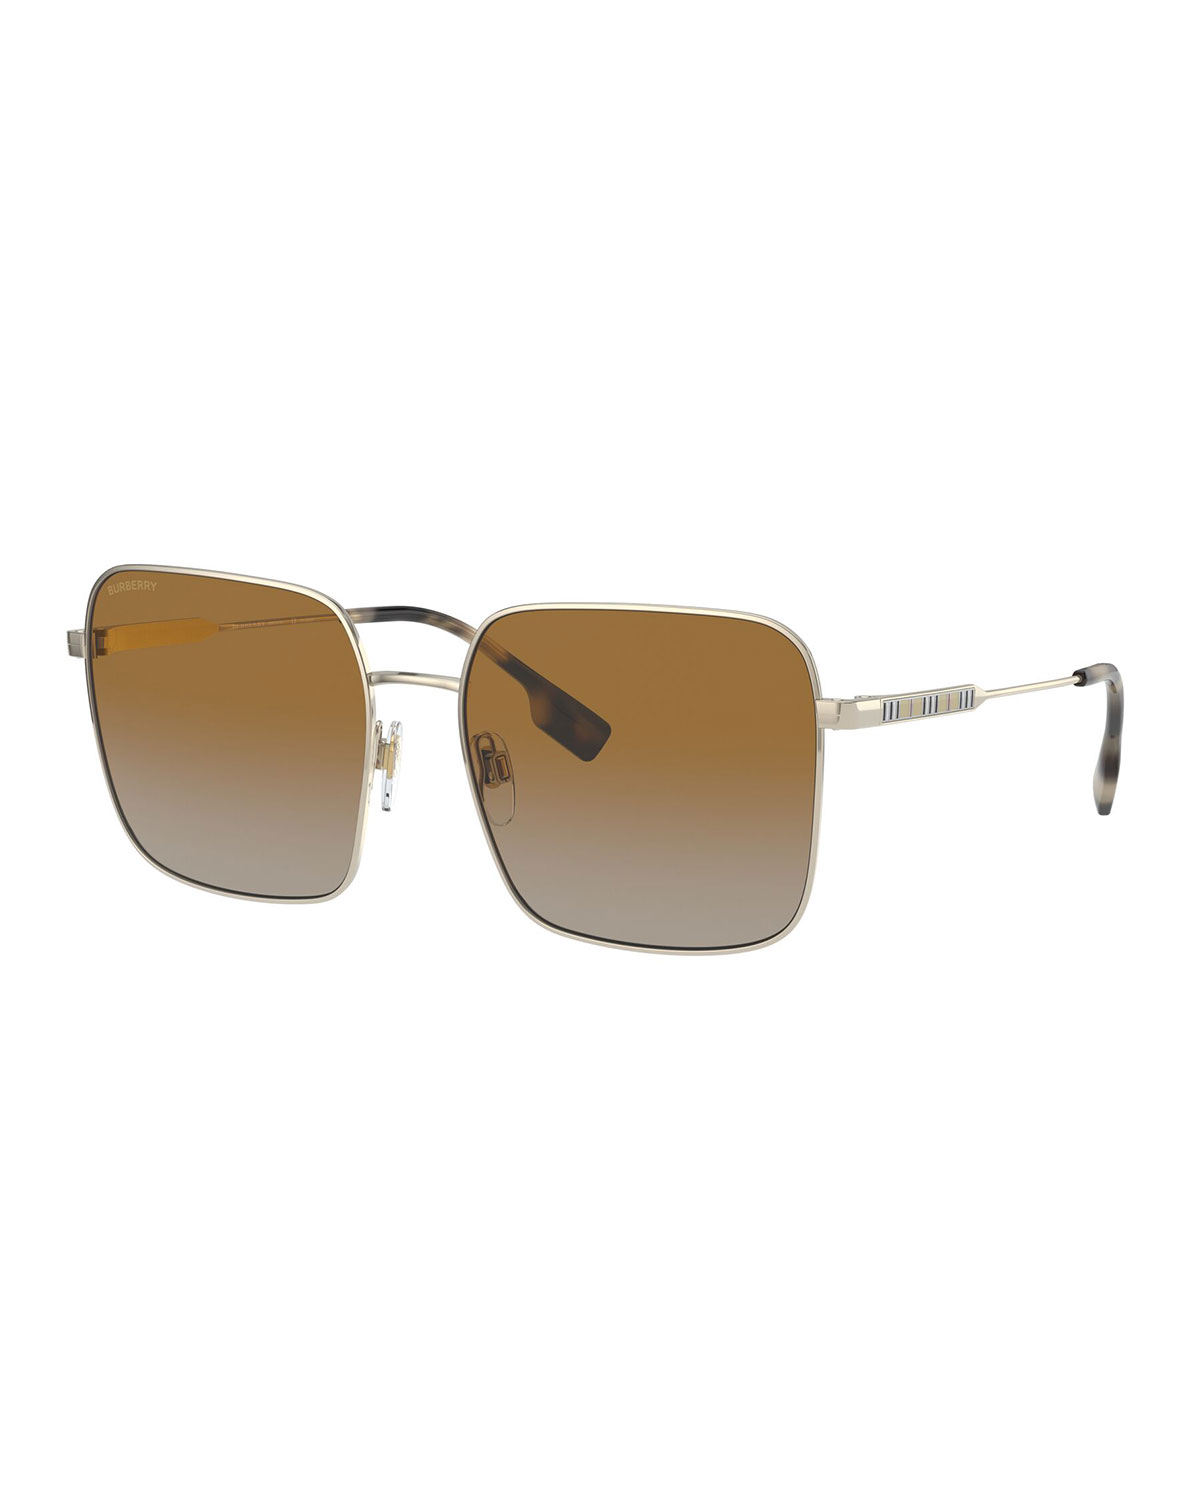 Burberry OVERSIZED SQUARE STEEL SUNGLASSES, GOLD/BROWN